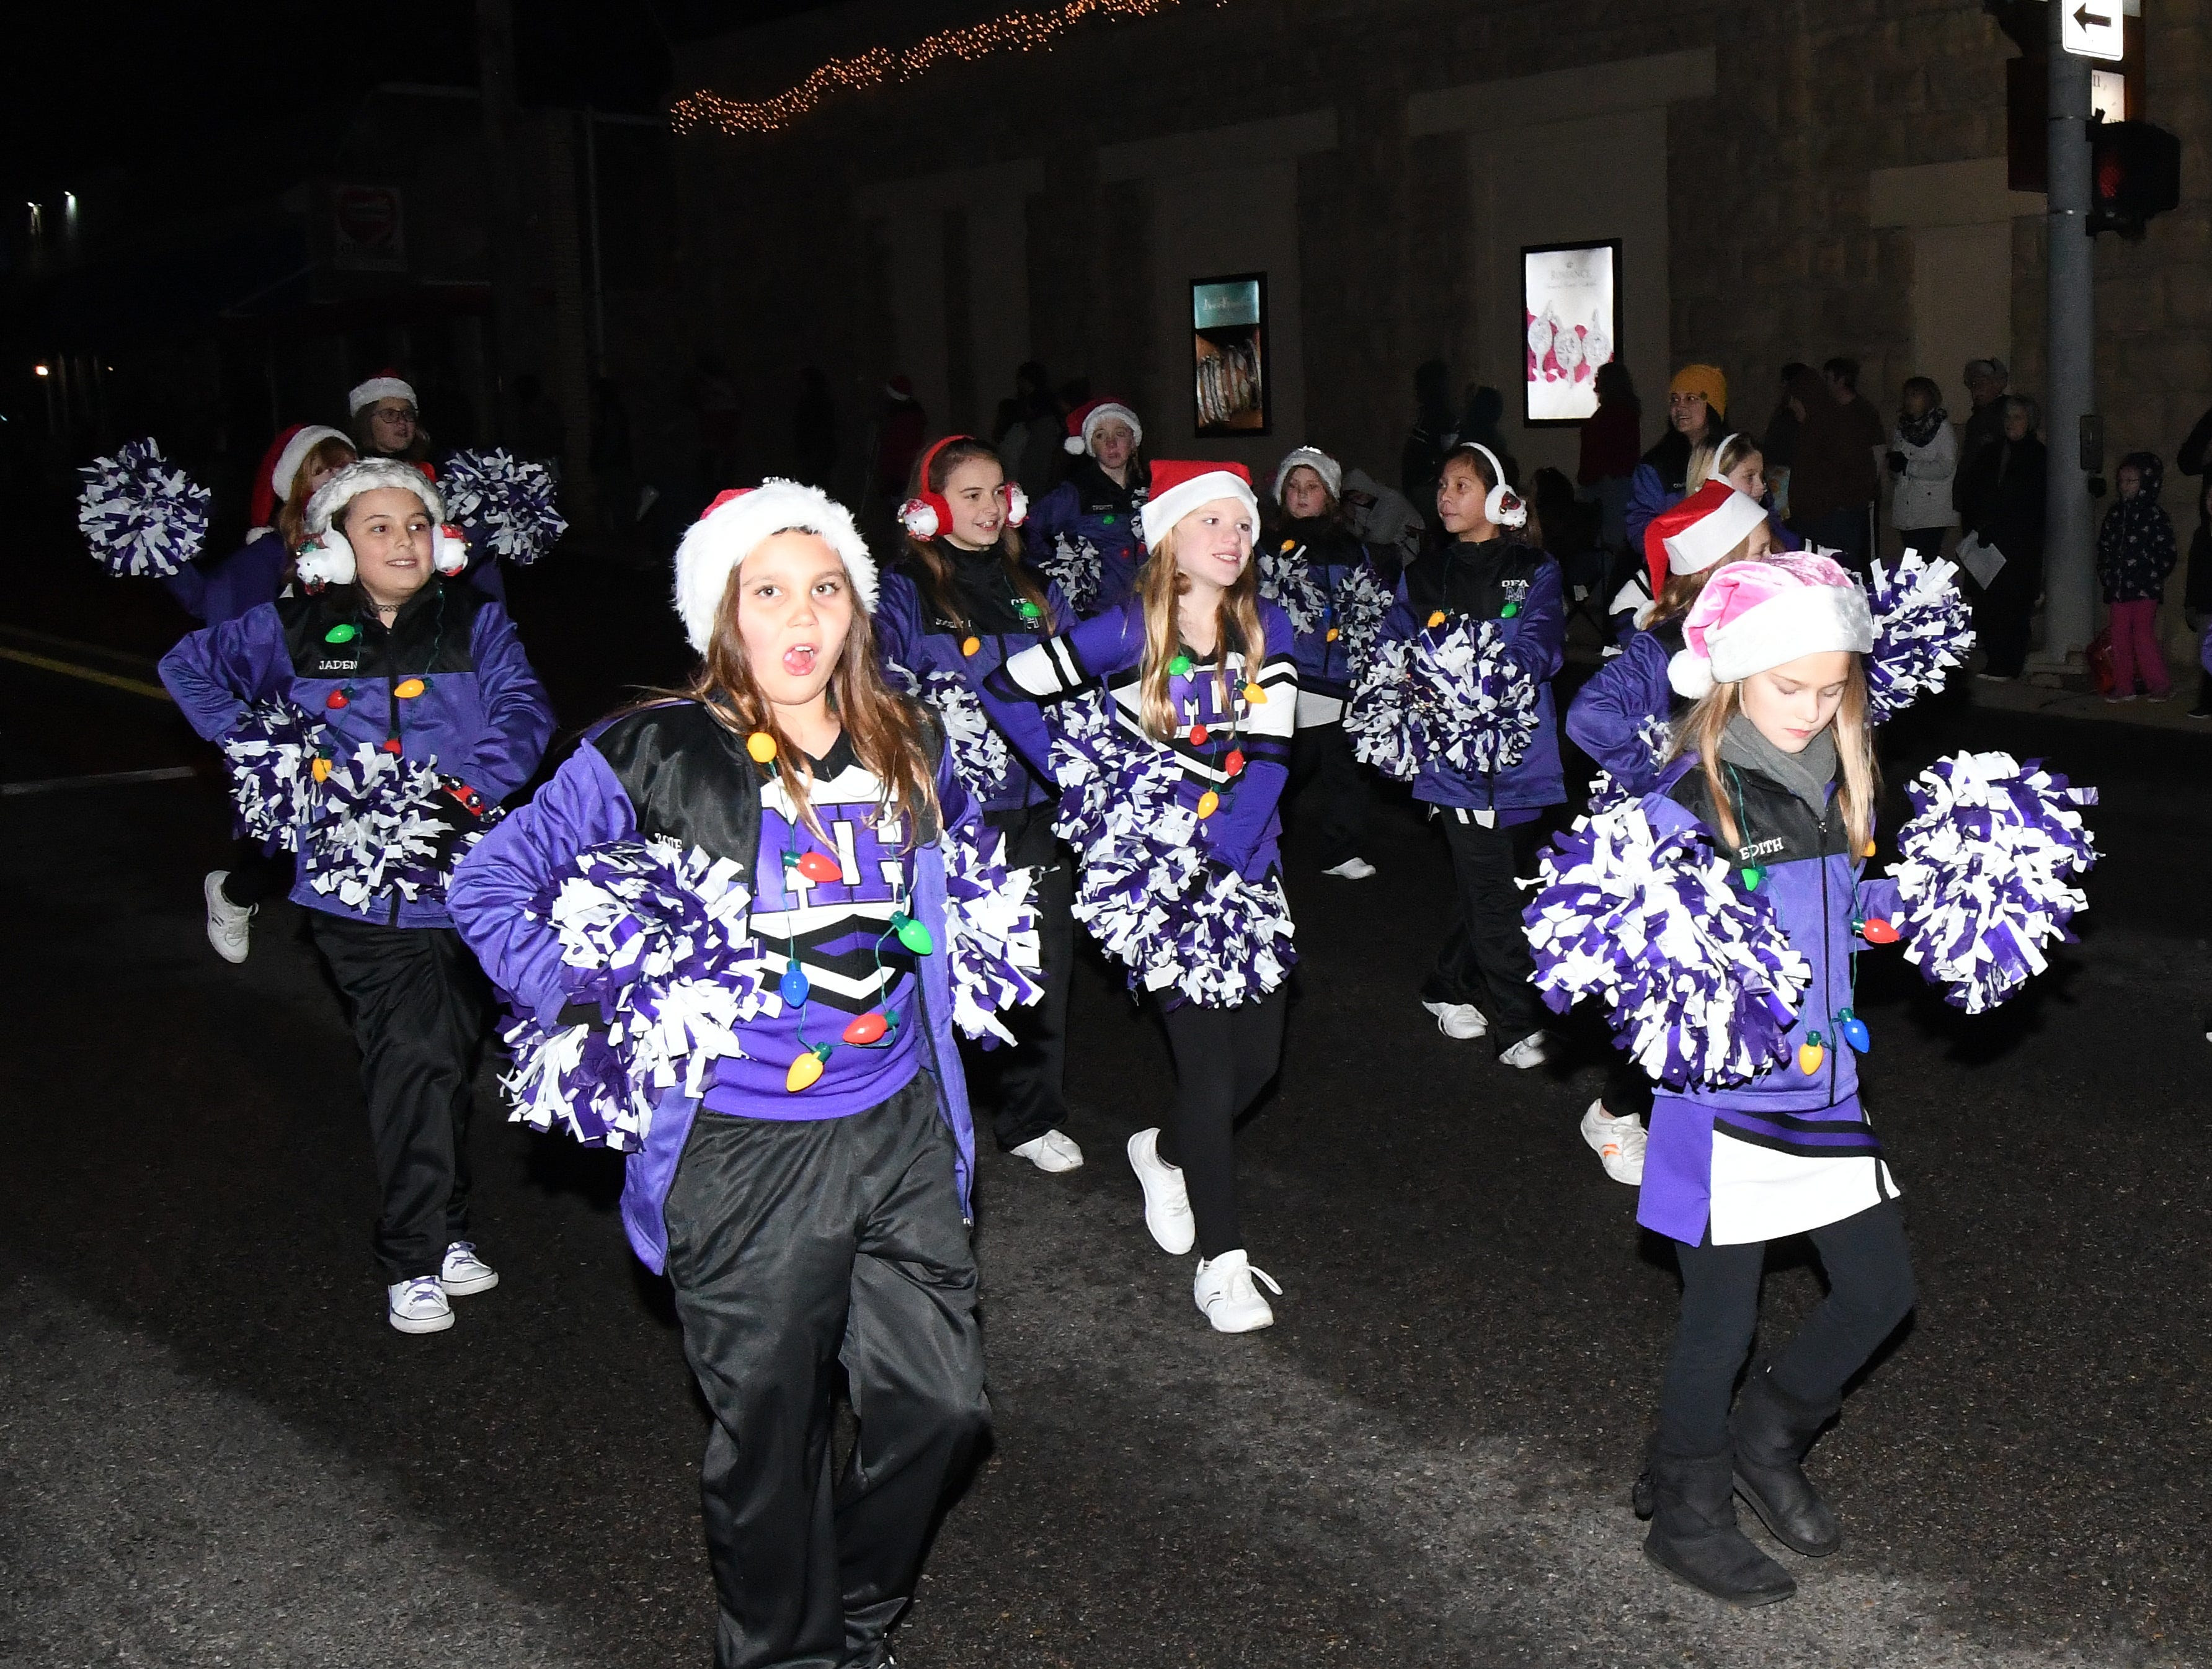 Scenes from the Mountain Home Chamber of Commerce Christmas Parade and Myrtle Wood Chamberlain Tree Lighting Ceremony.